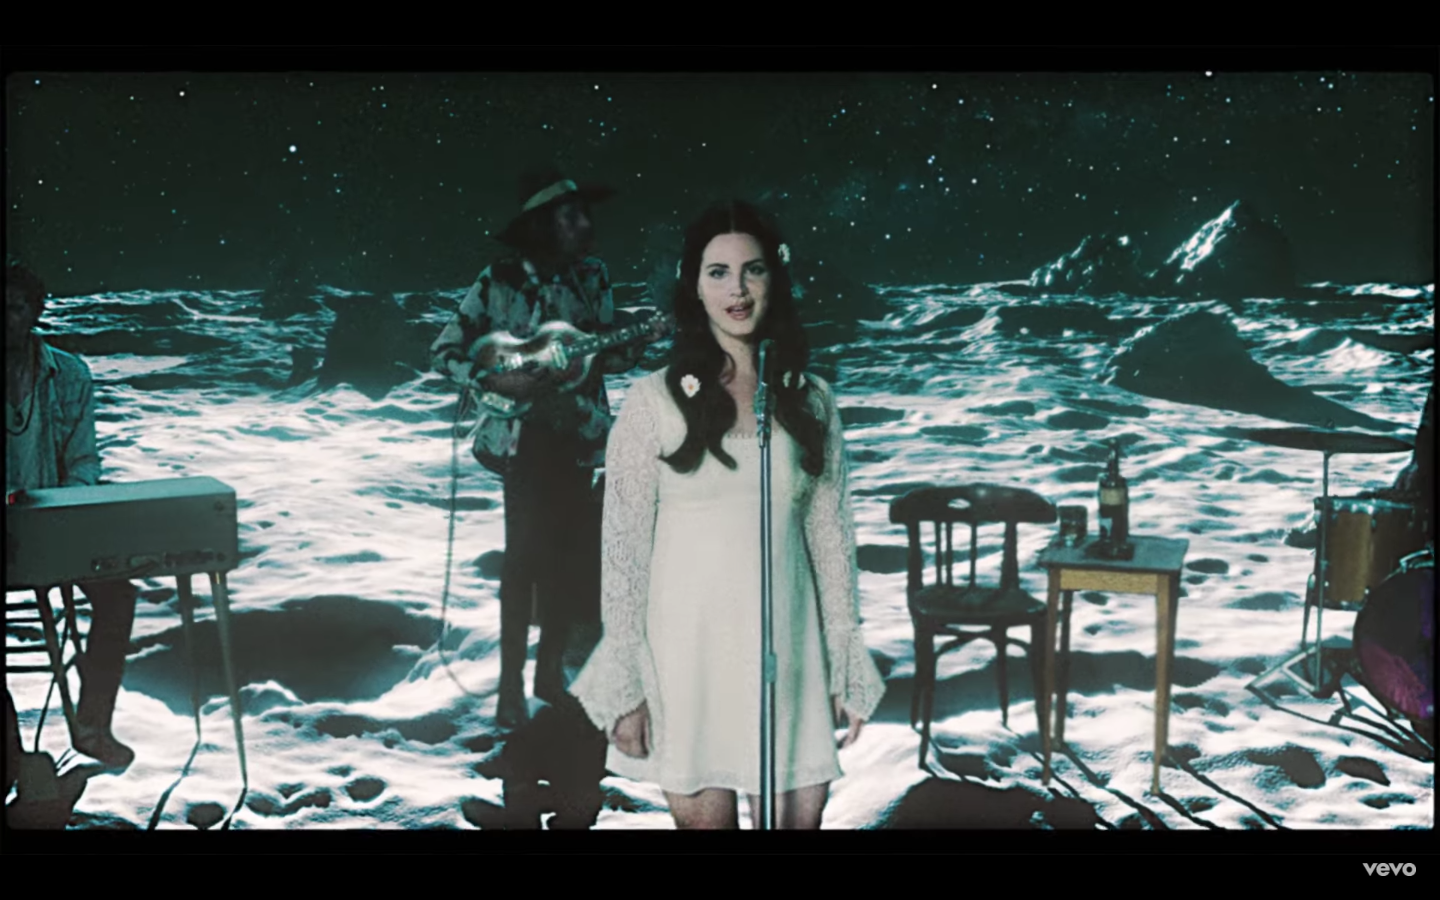 Love Video By Lana Del Rey Depicts Impossible Extraterrestrial